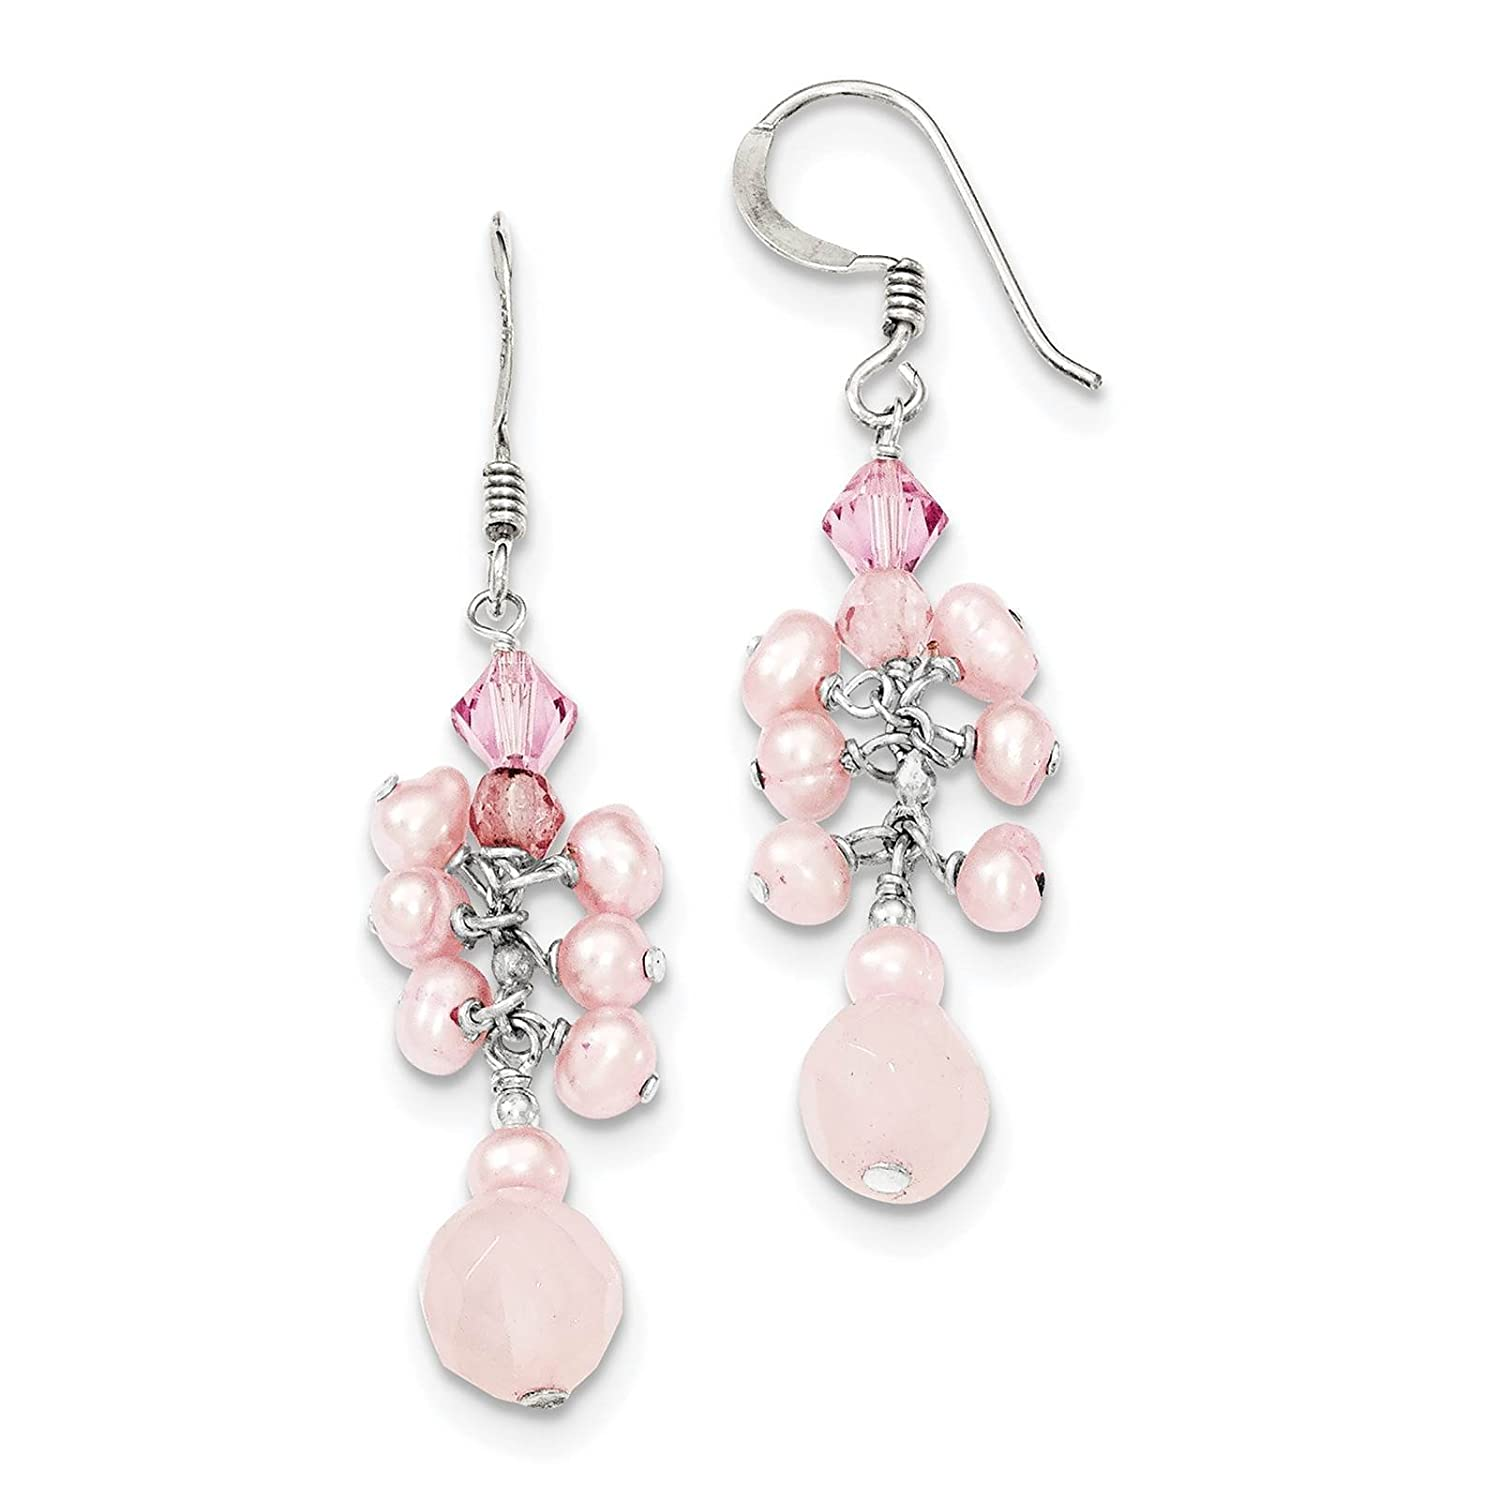 Pink Crystal /& Pink Freshwater Cultured Pearl Dangle Earrings 925 Sterling Silver Quartz